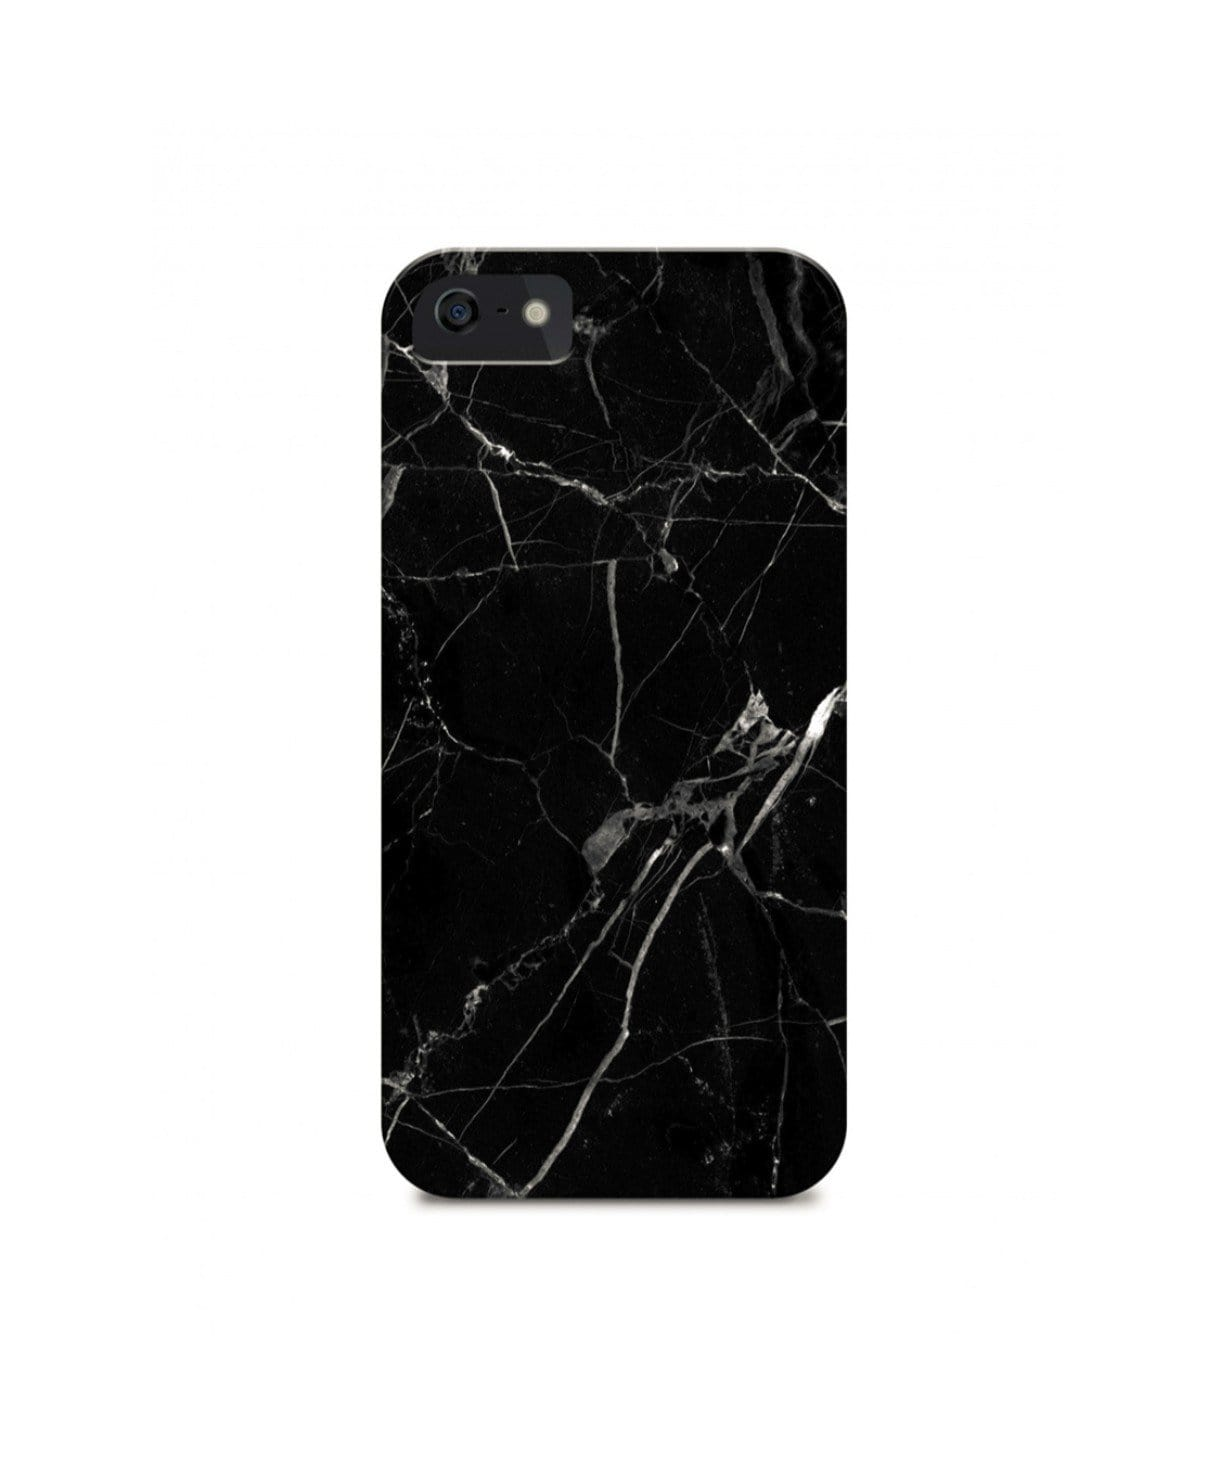 Black Marble IPhone Cover (Personalisation Available) - Uptownie